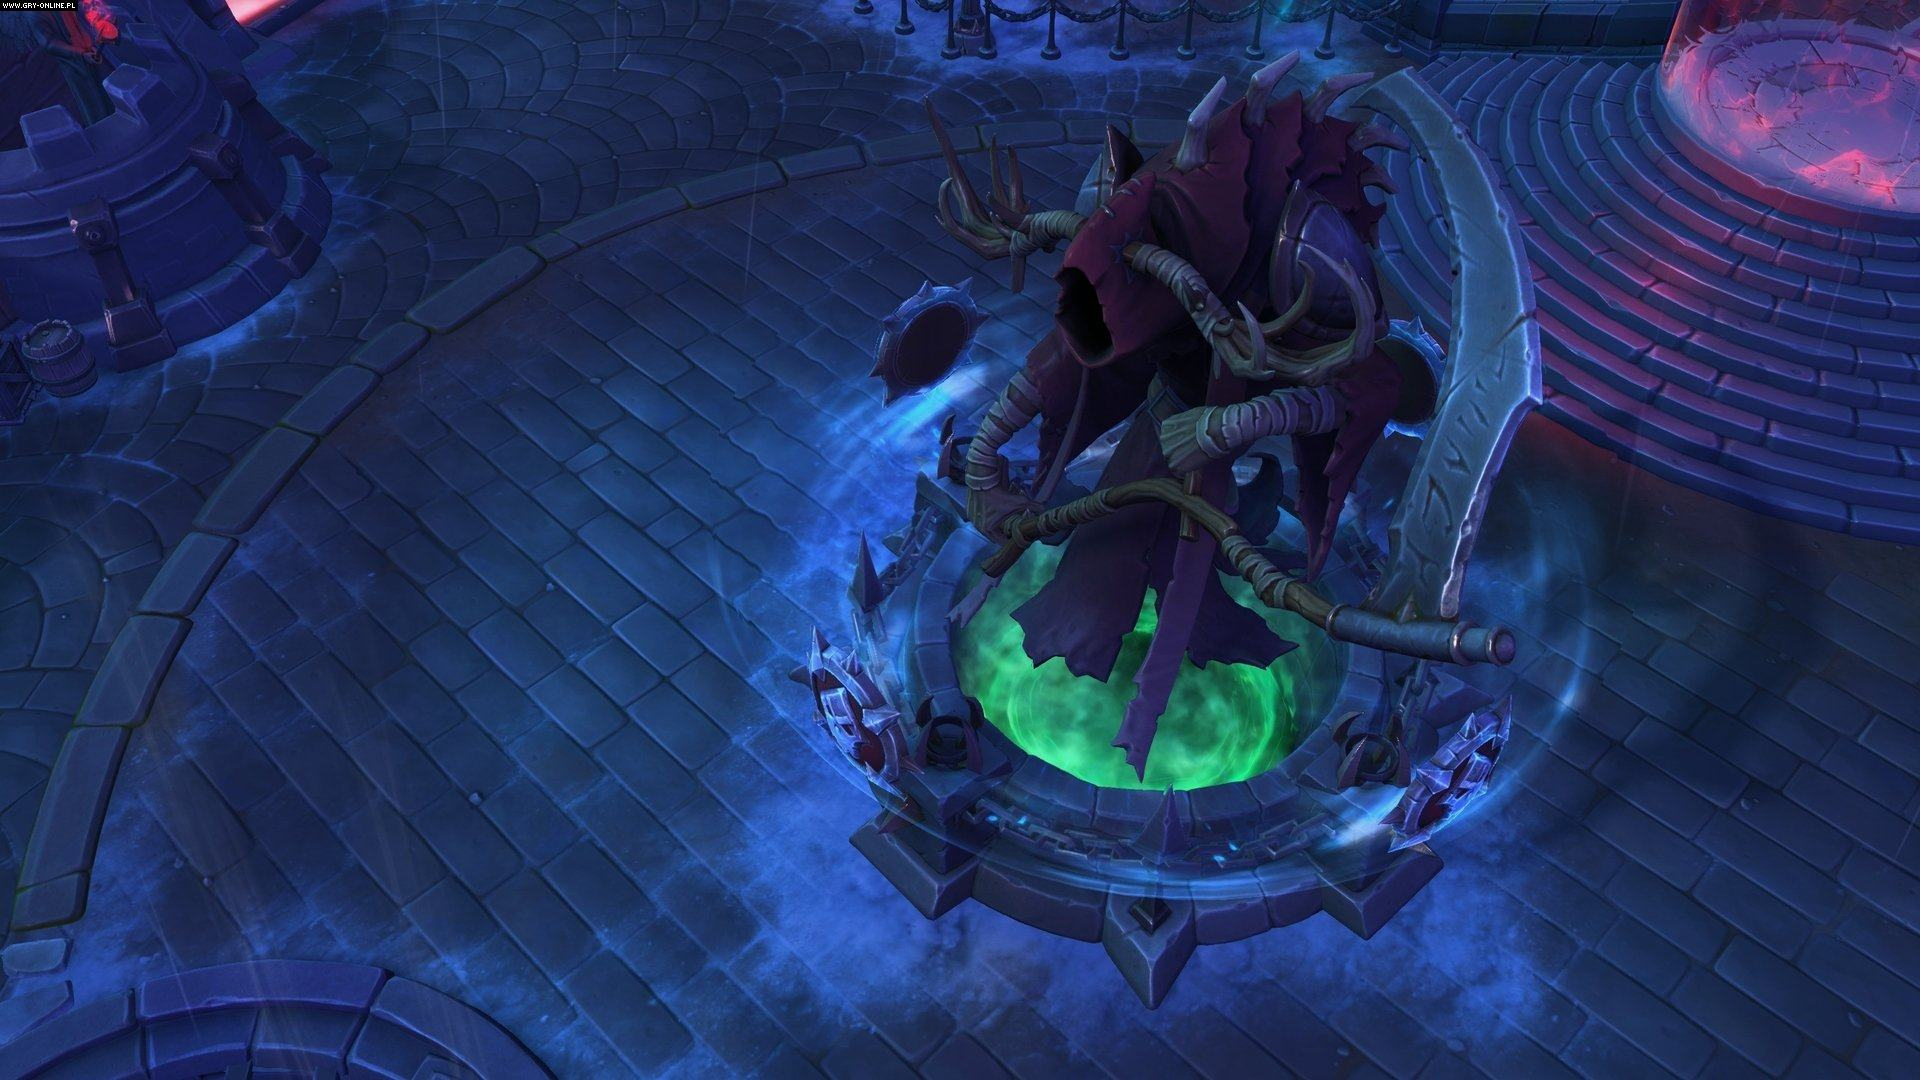 Heroes of the Storm image #4